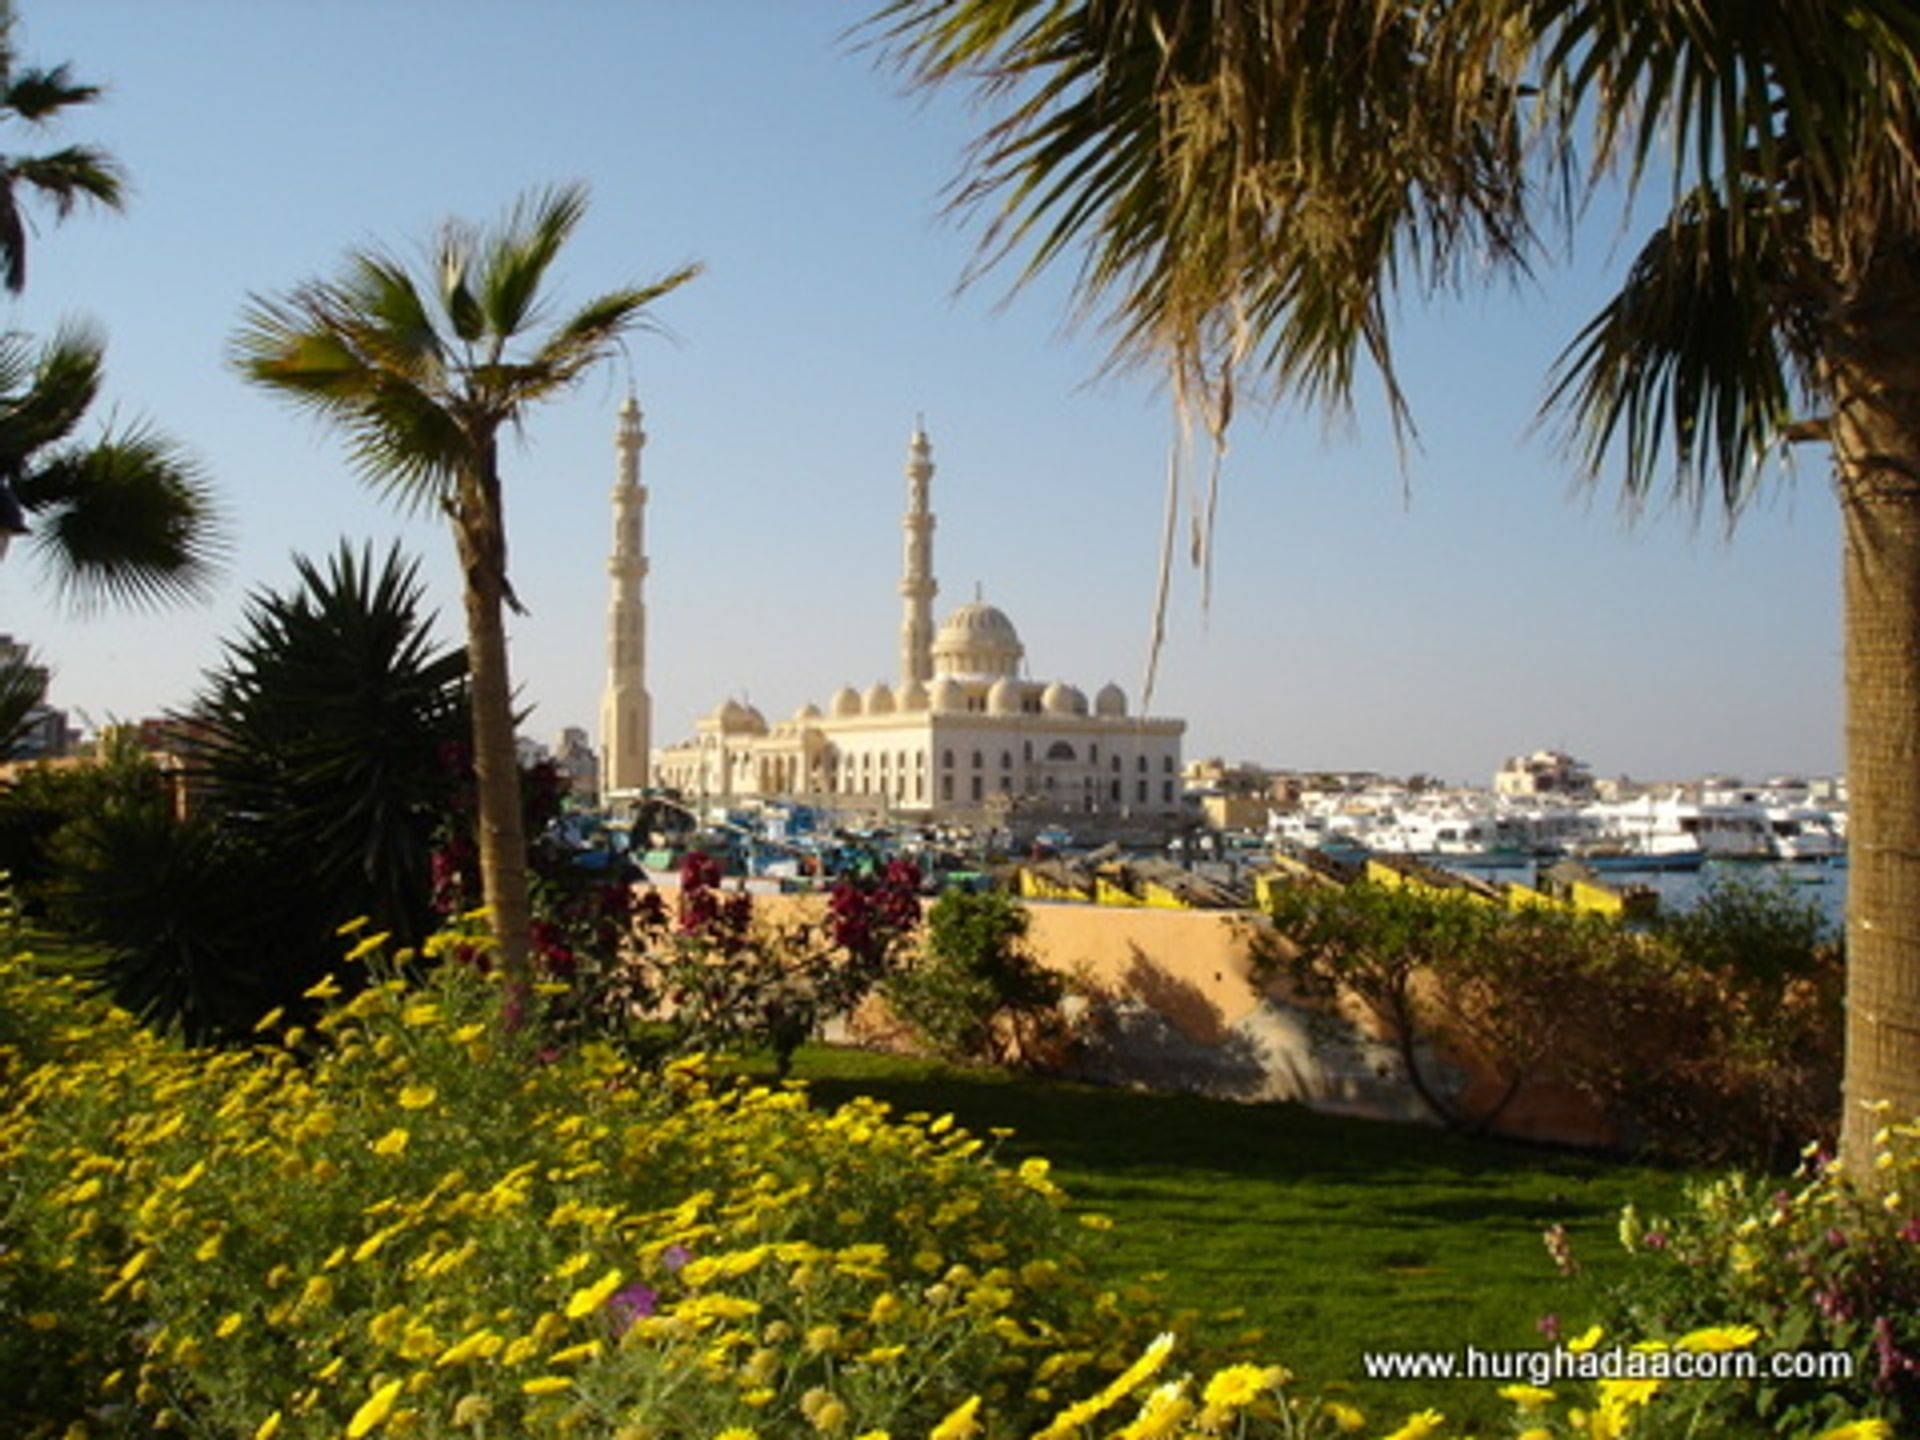 Hurghada Mosque near Marina